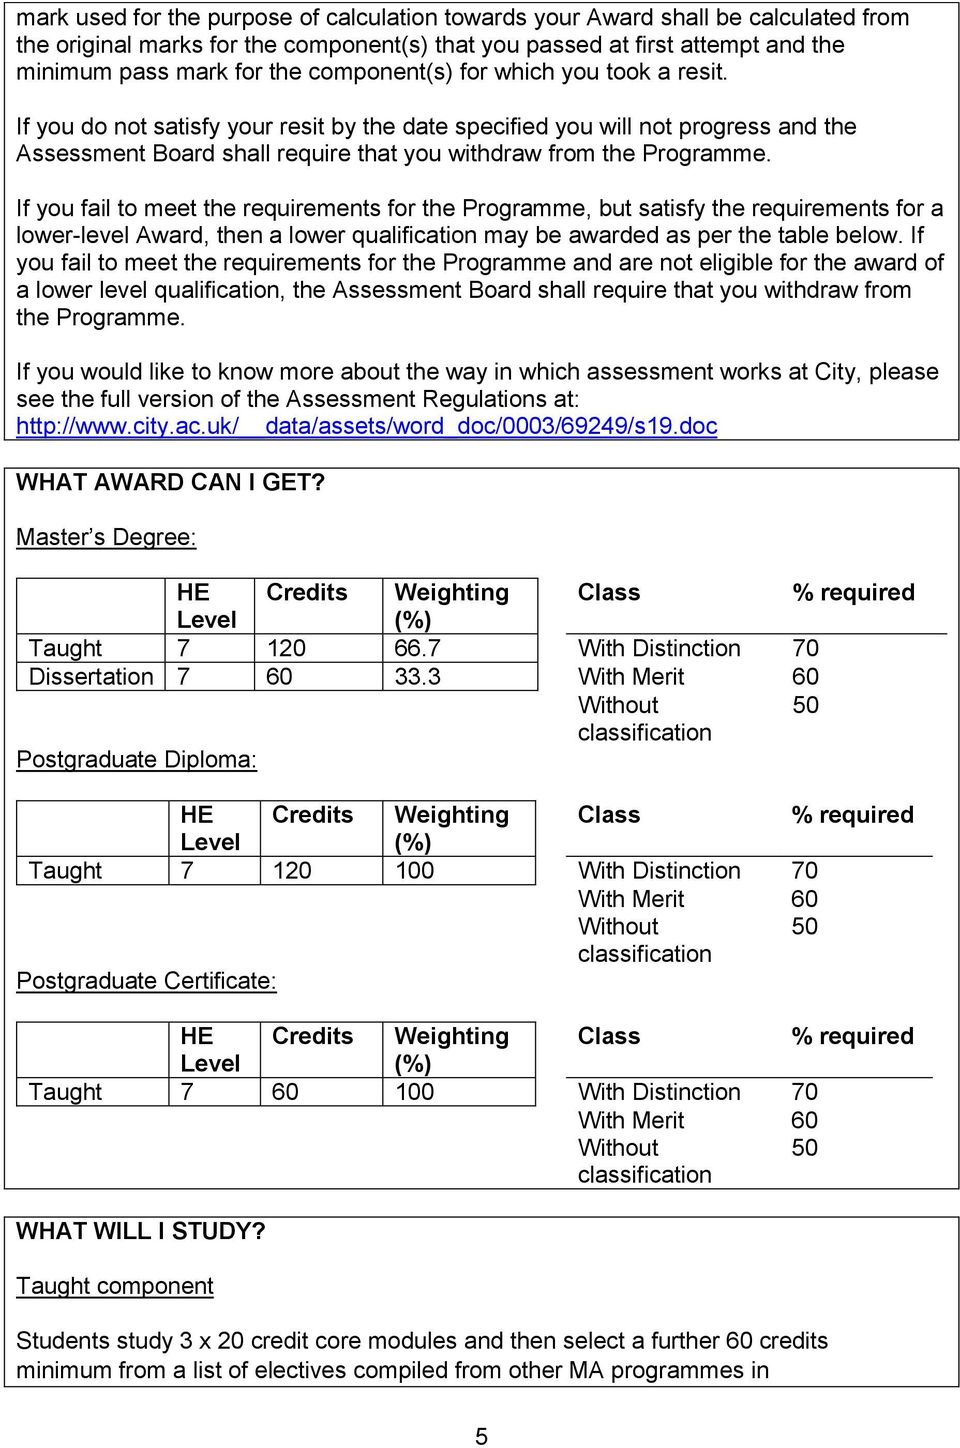 If you fail to meet the requirements for the Programme, but satisfy the requirements for a lower-level Award, then a lower qualification may be awarded as per the table below.